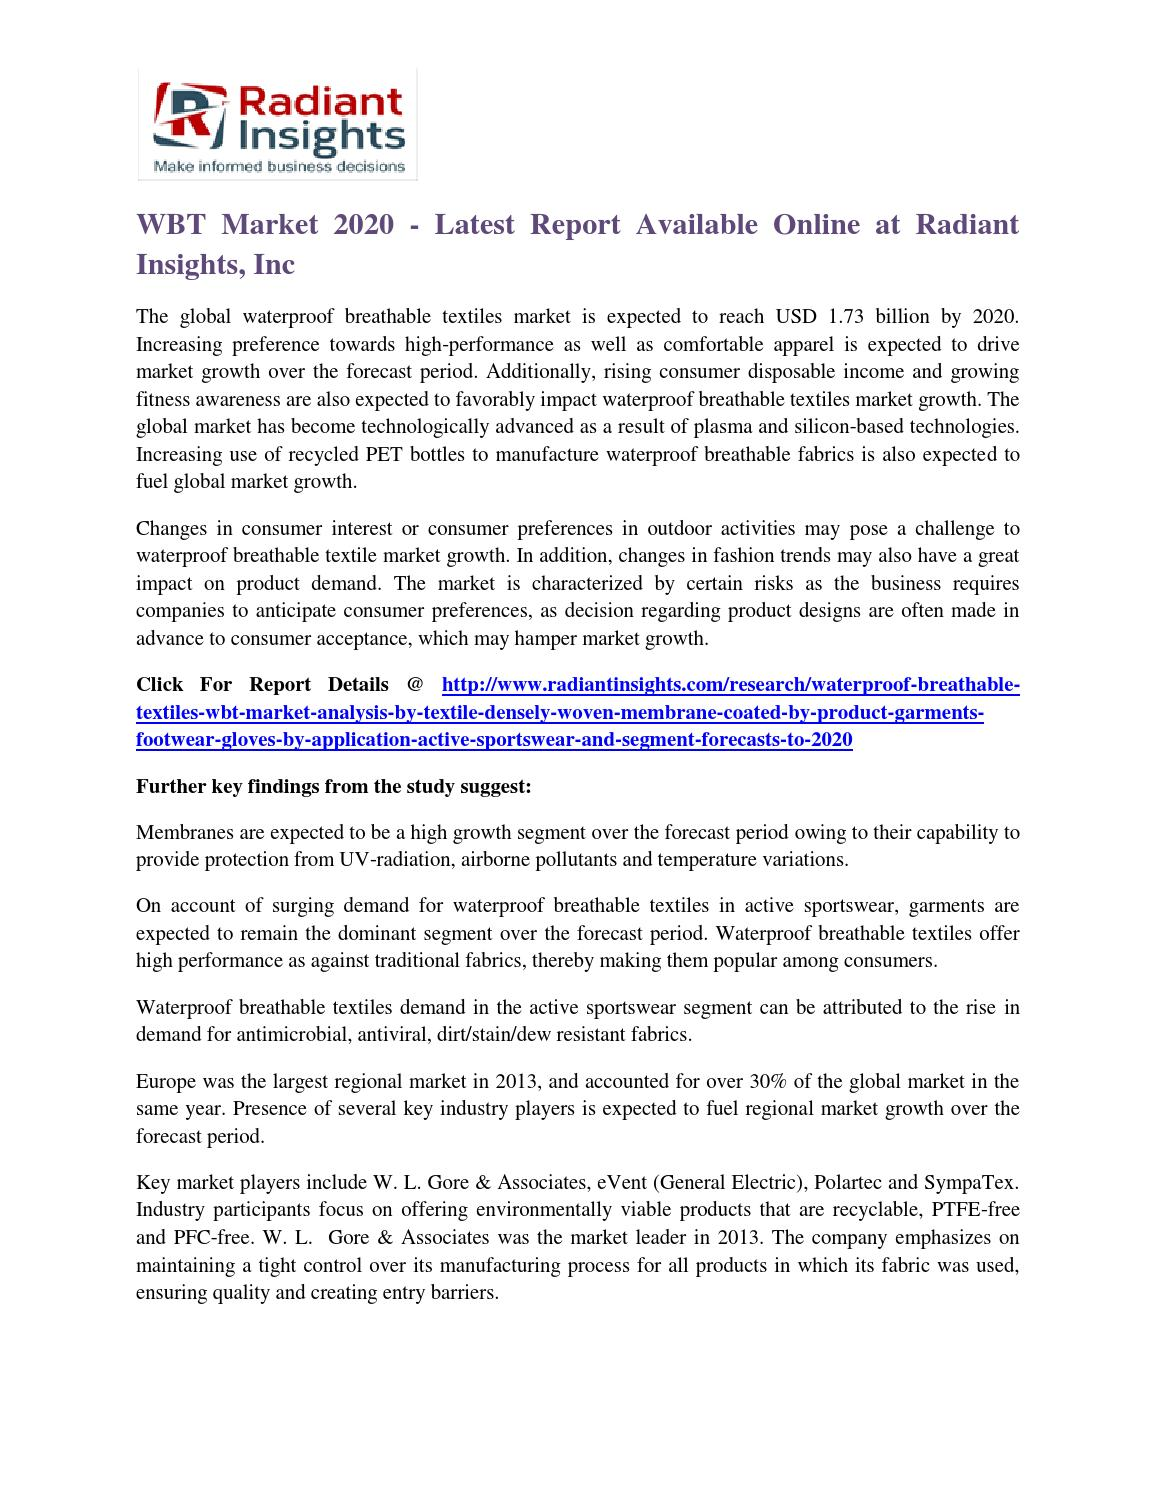 Wbt market 2020 latest report available online at radiant insights